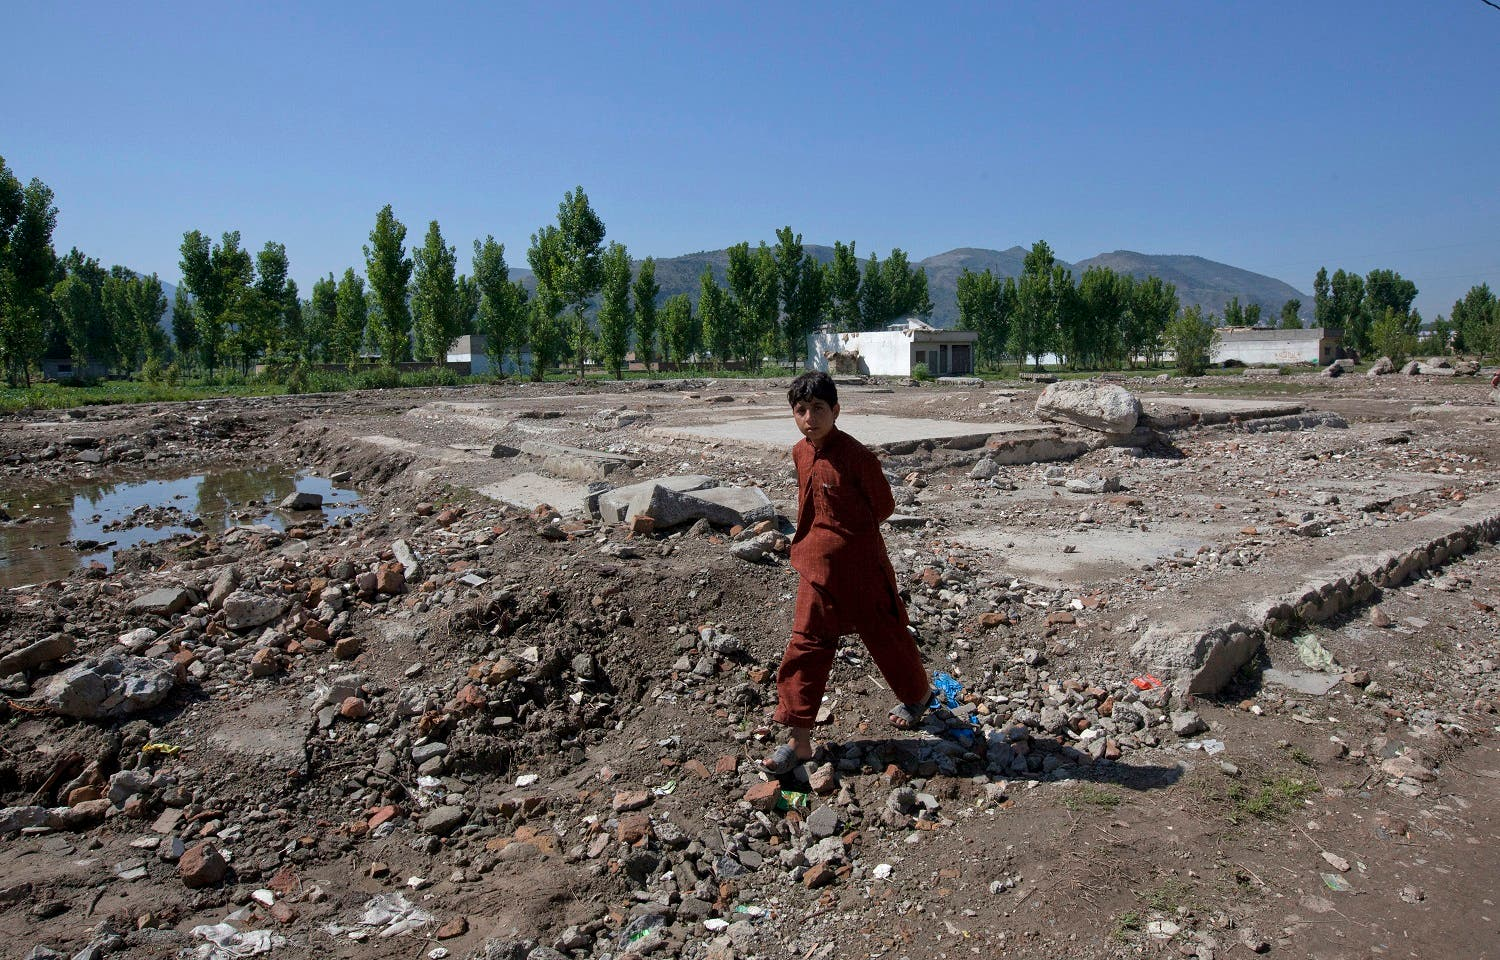 A boy walks past the demolished site of a compound of Osama bin Laden in Abbottabad May 2, 2012. (File photo: Reuters)